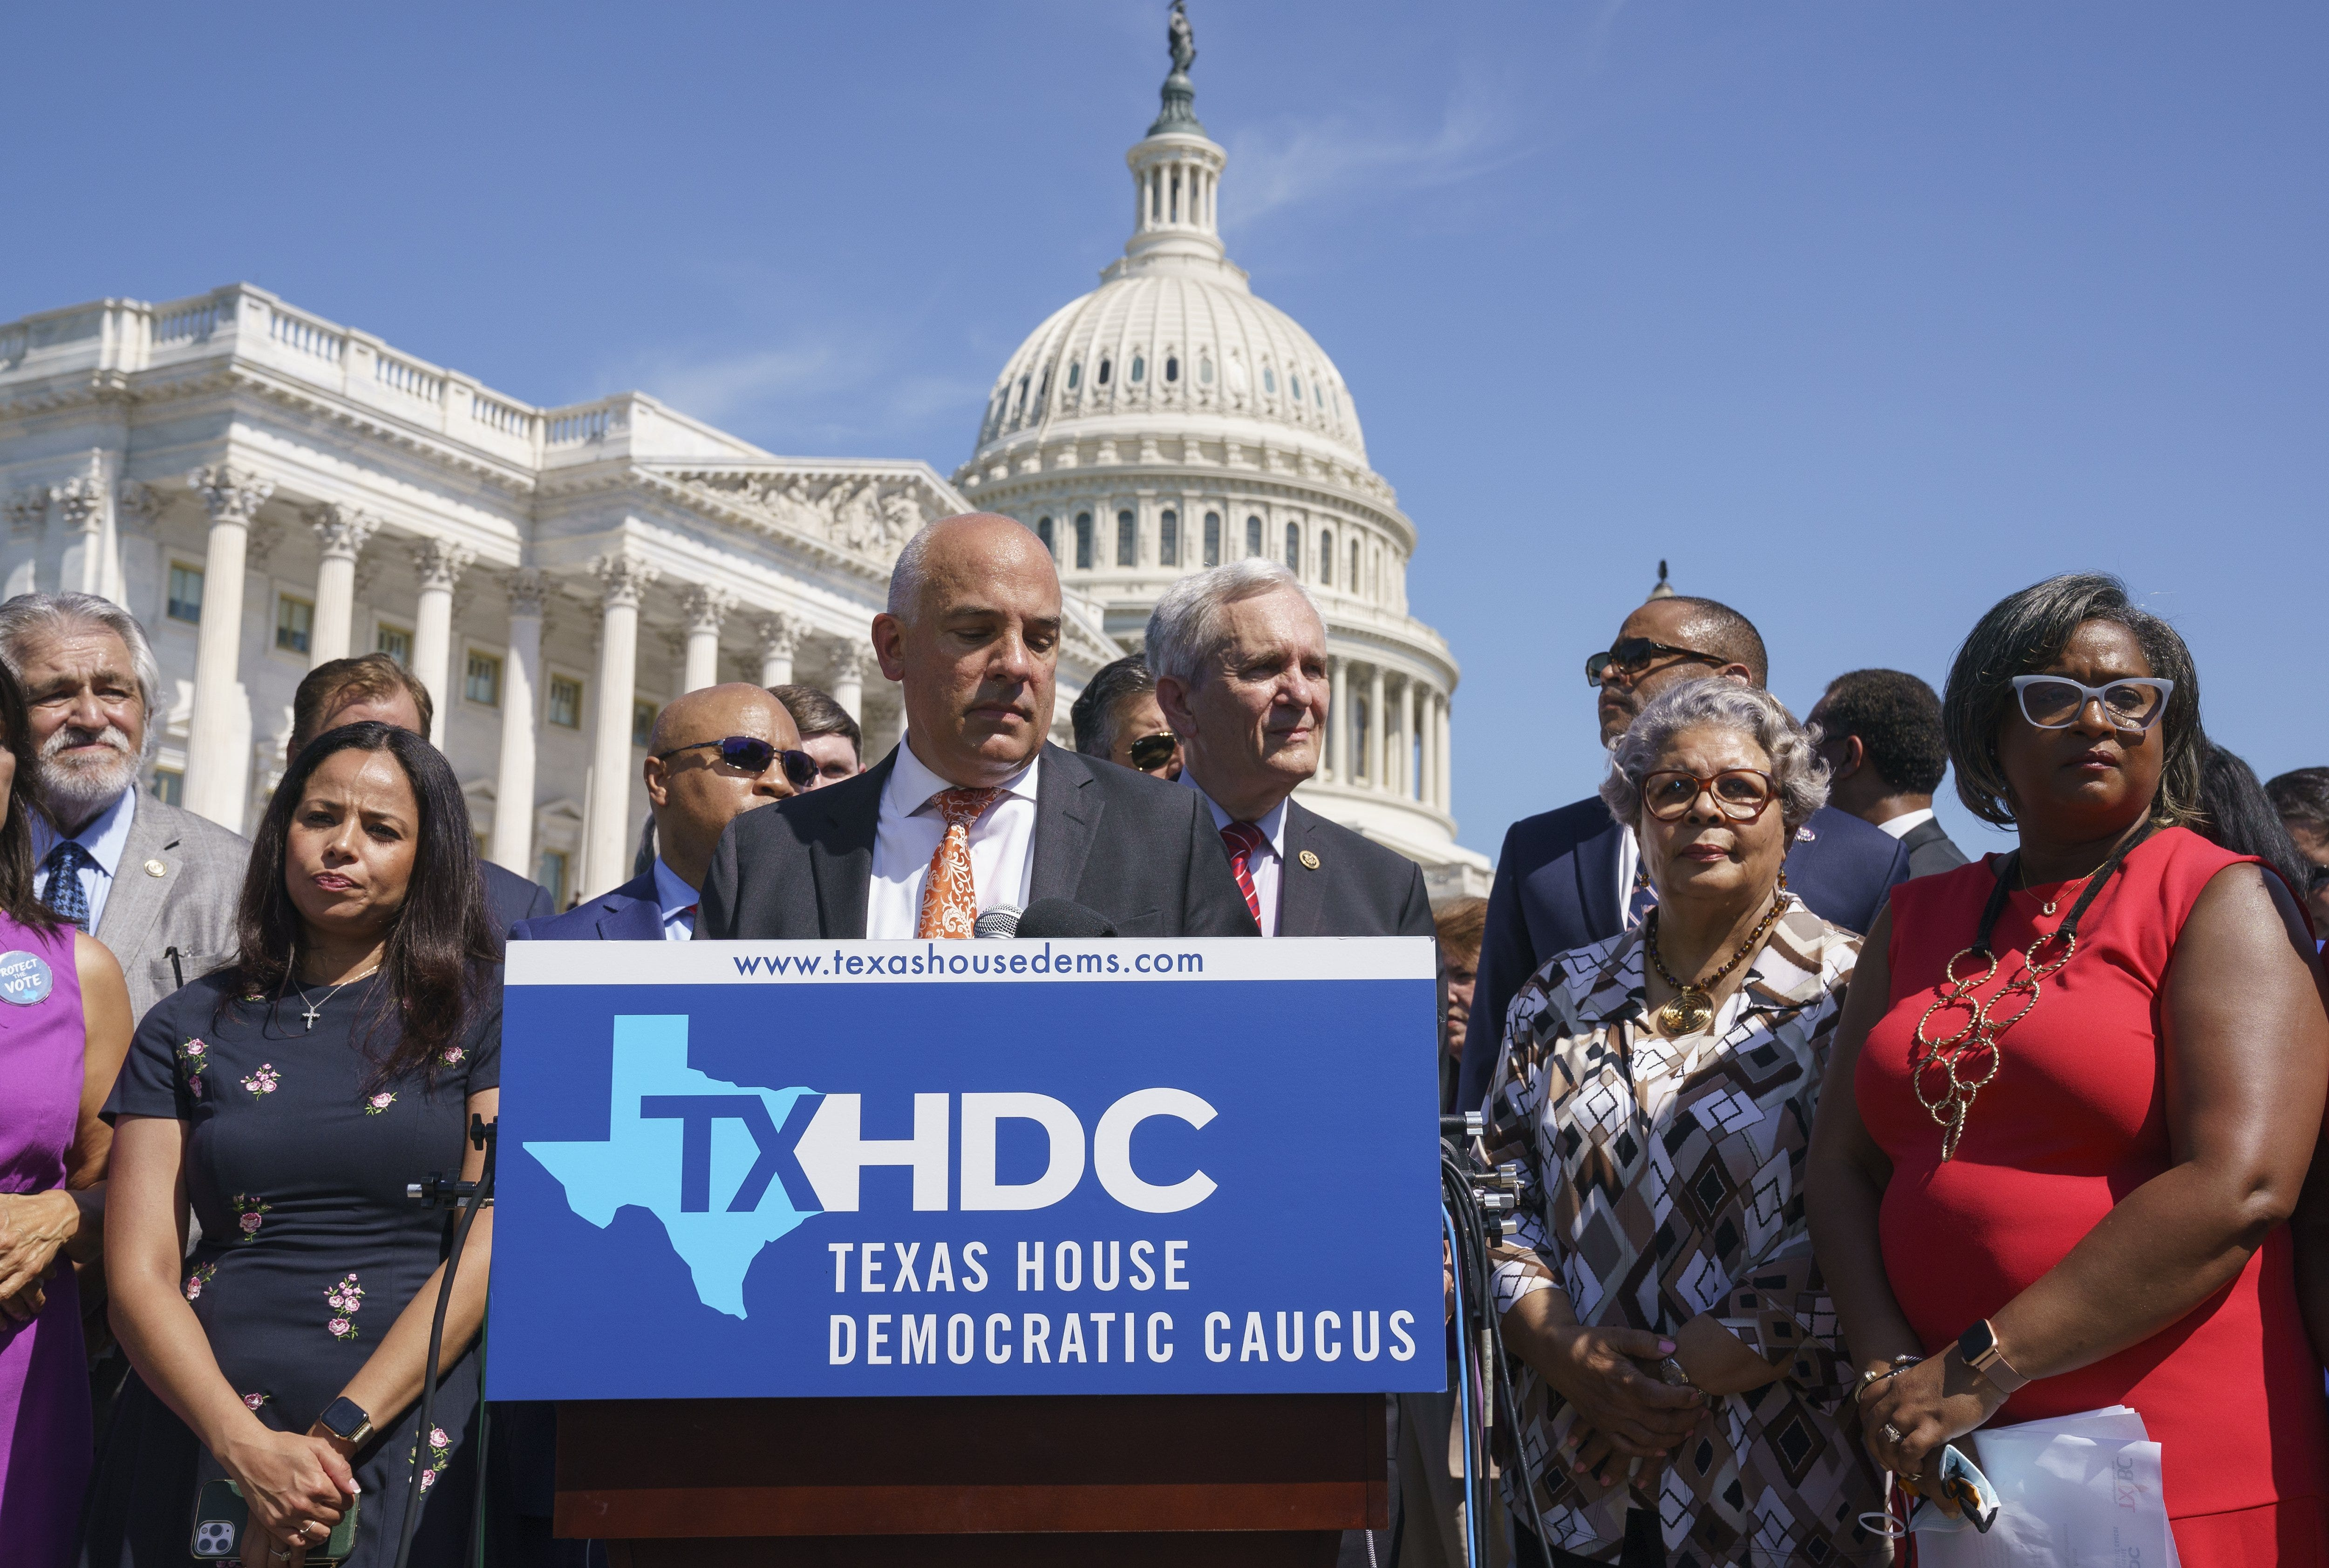 Texas House Democratic Caucus Chairman Chris Turner, center, is joined by fellow Democrats at a news conference at the Capitol in Washington on July 13 after they broke quorum to kill a GOP voting bill.